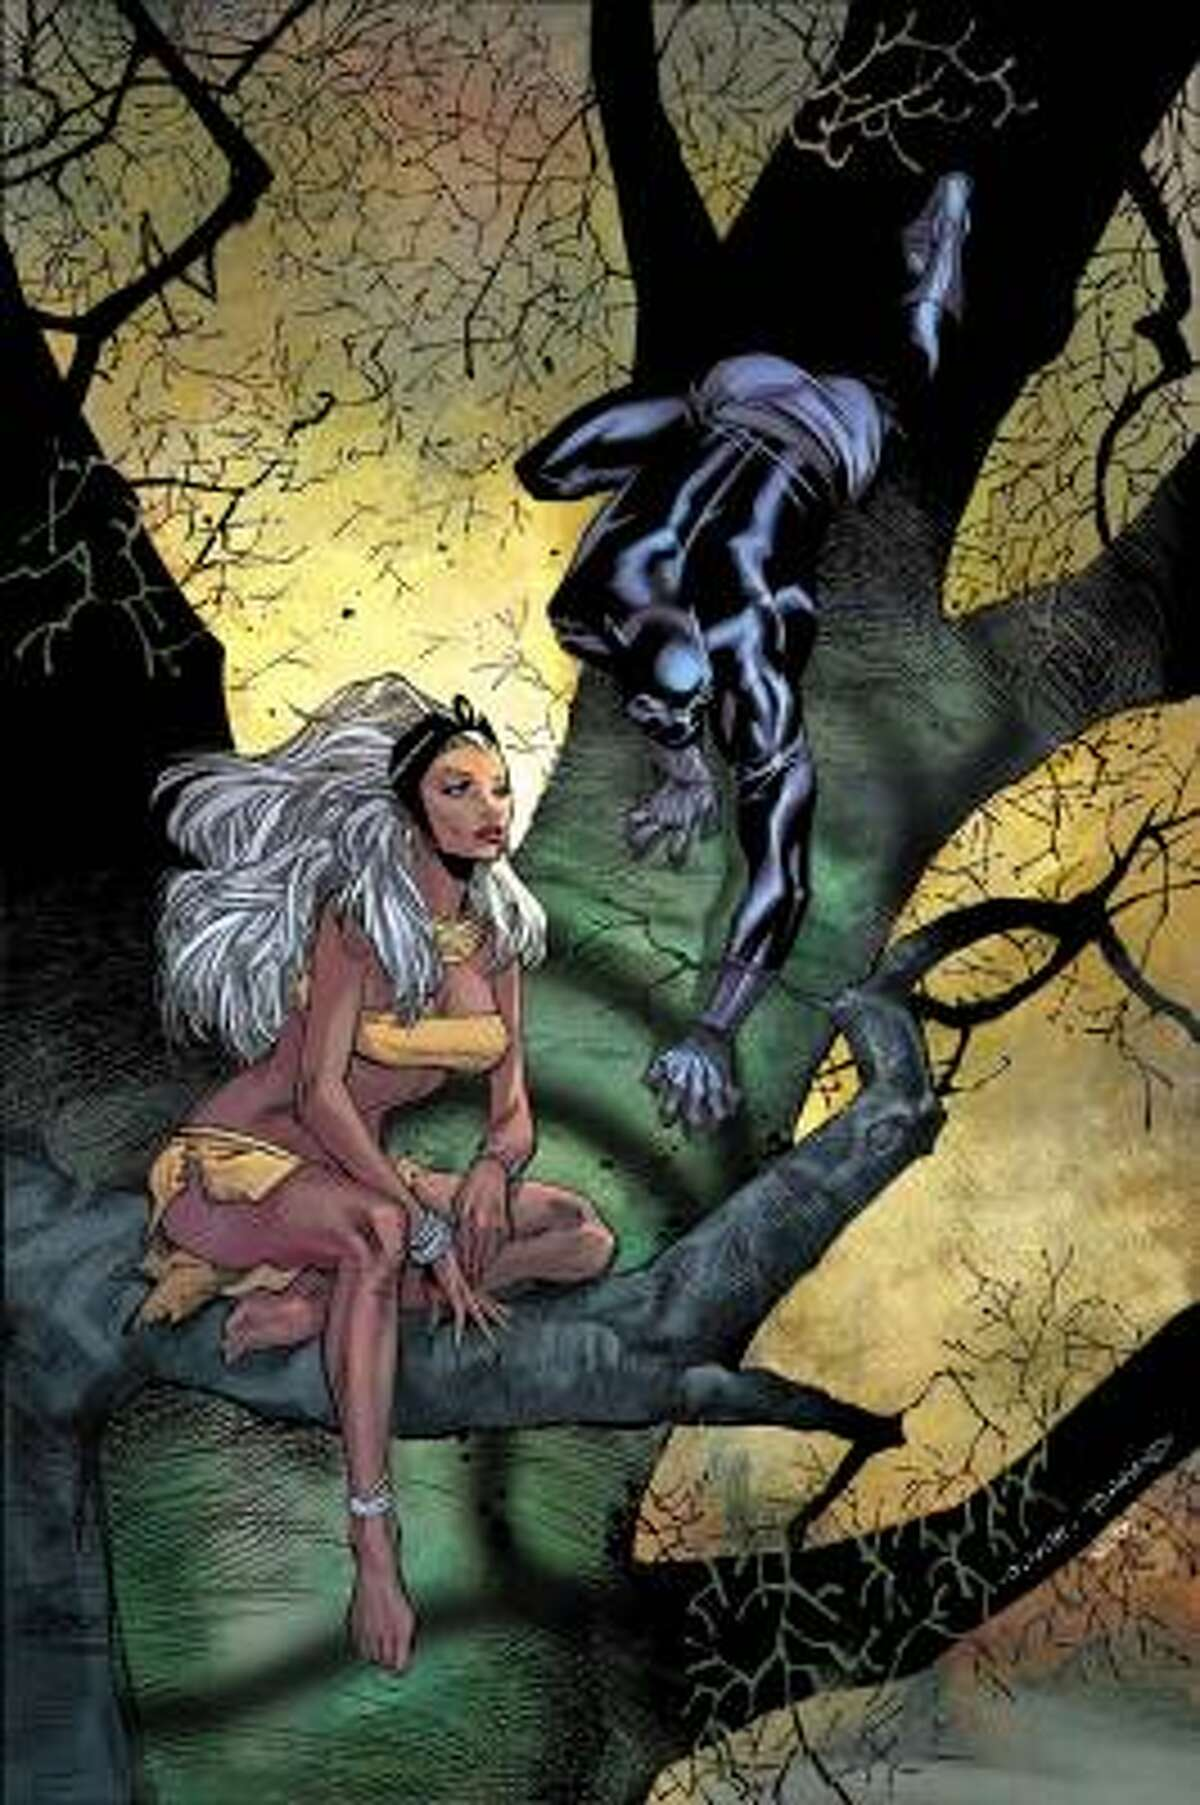 Marvel editor in chief Joe Quesada describes the marriage of X-Men's Storm and Black Panther, black superheroes, as ''our version of the wedding of Charles and Diana.''